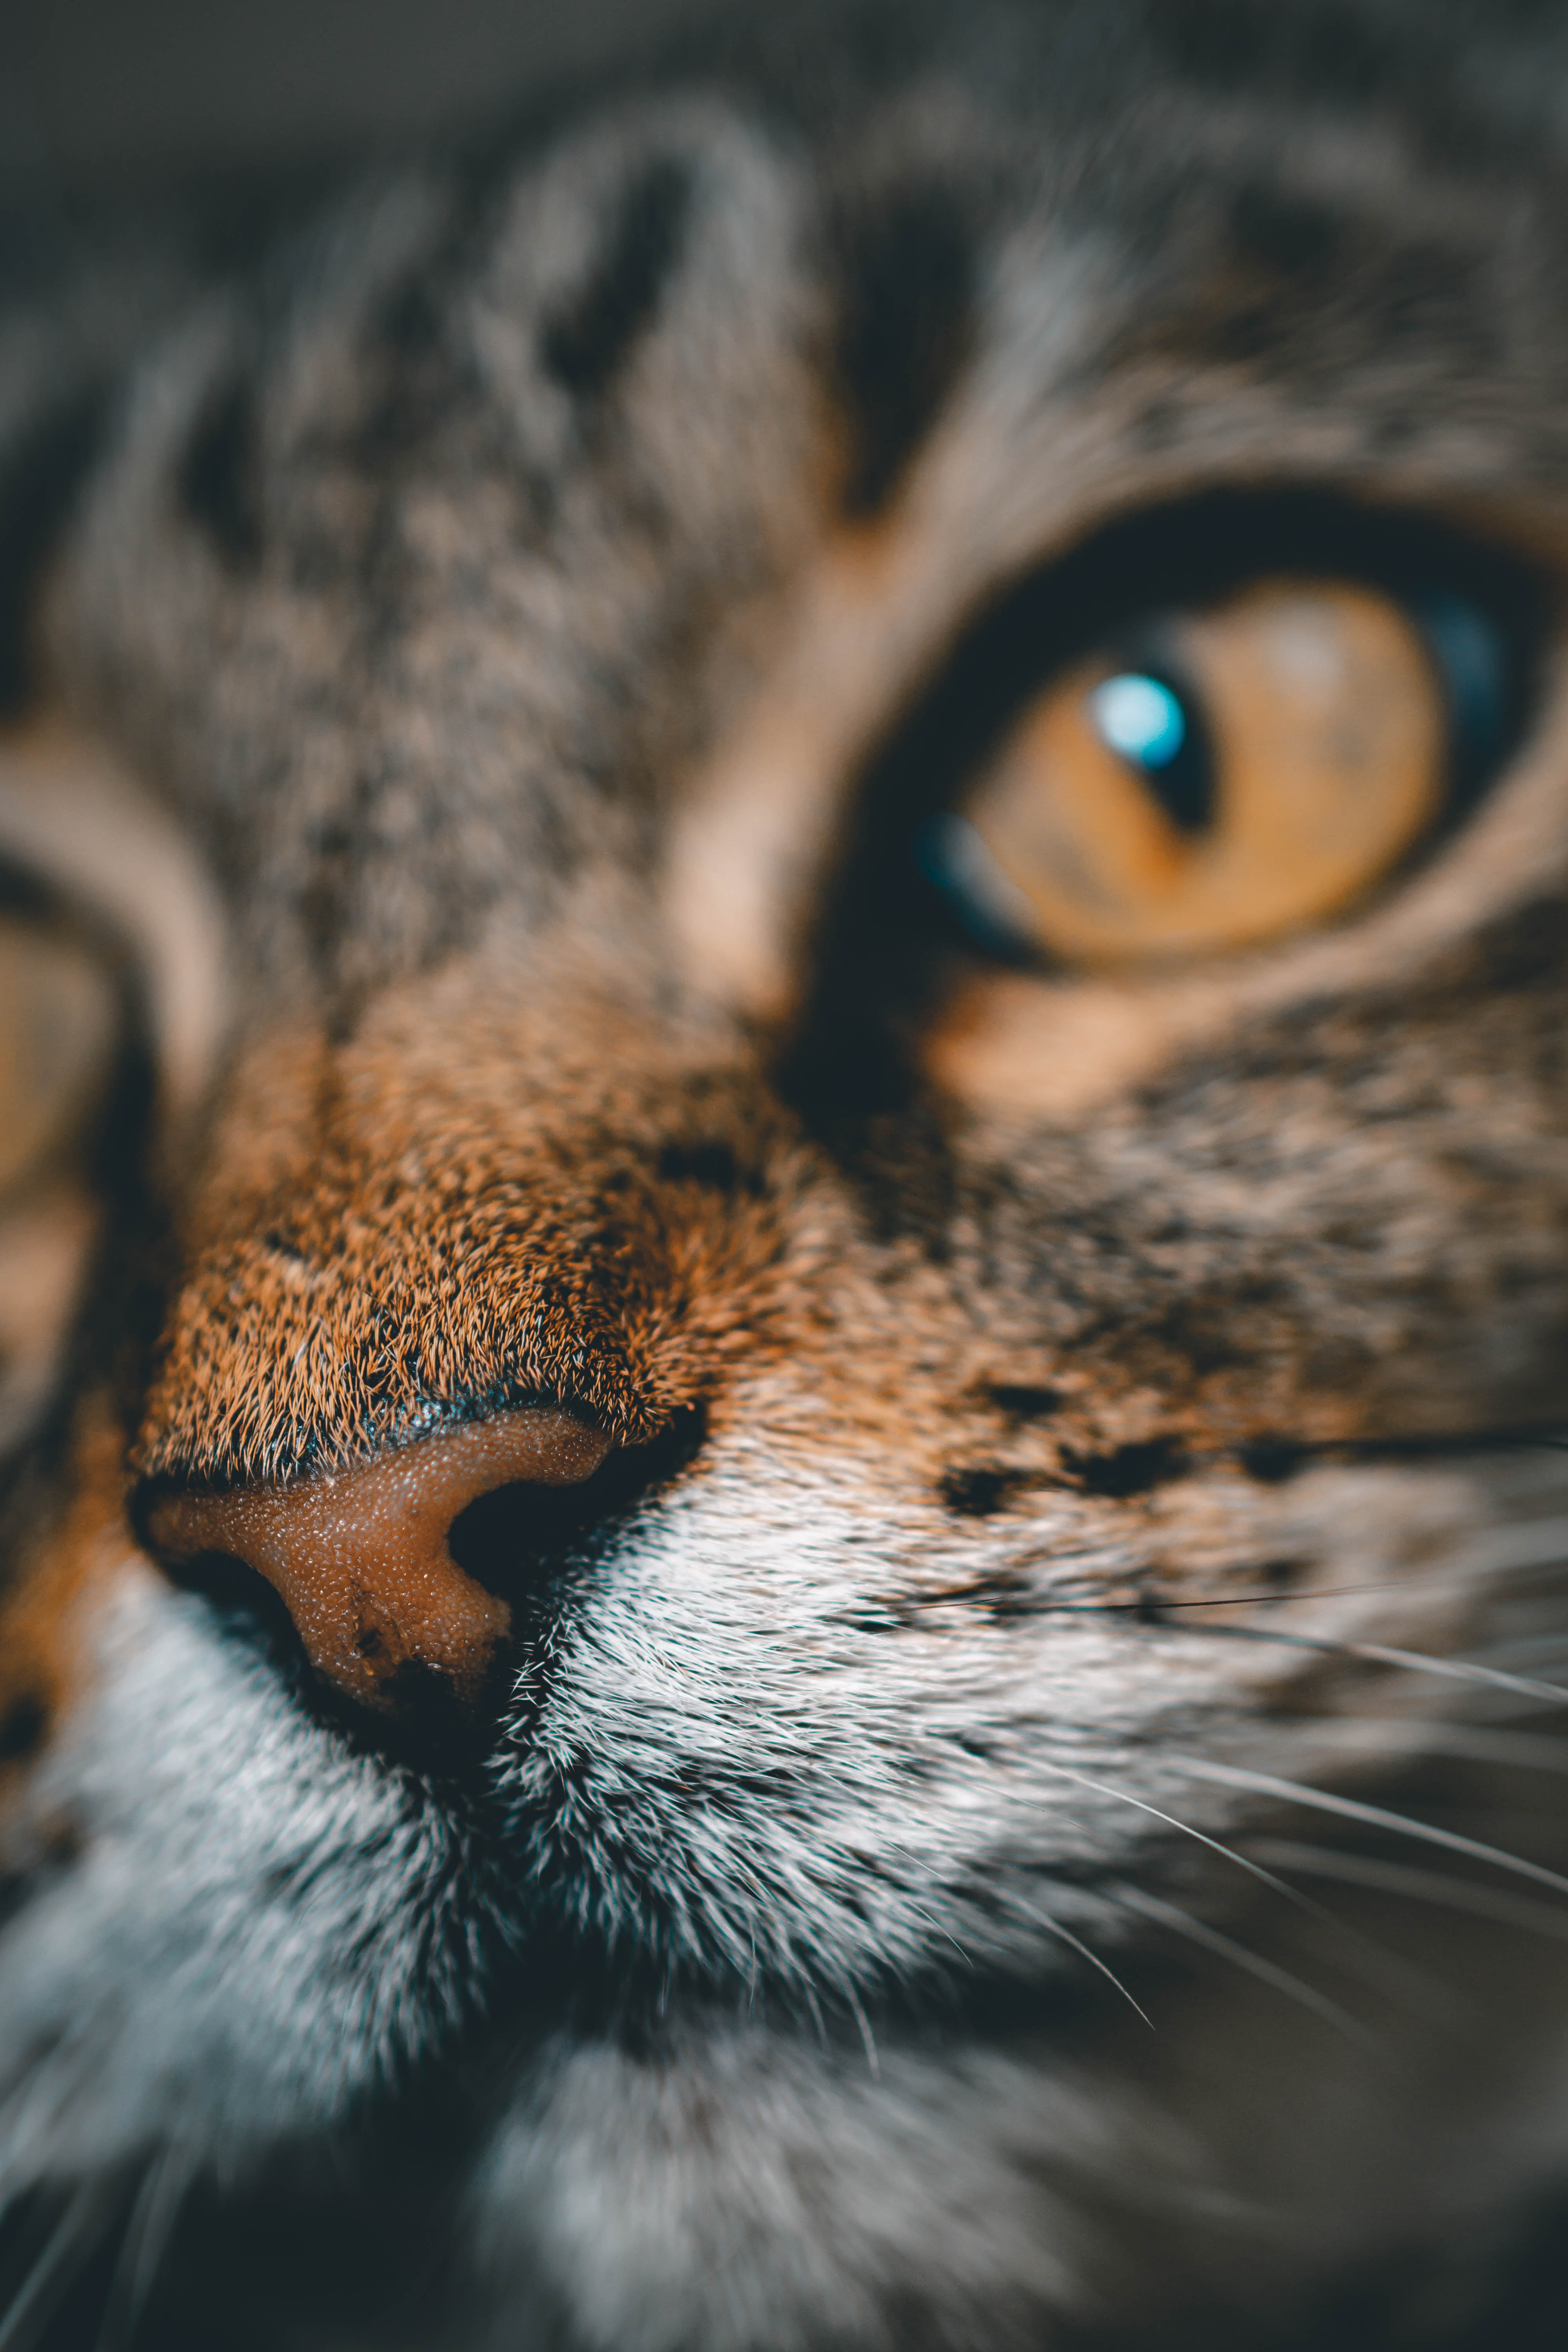 128726 Screensavers and Wallpapers Nose for phone. Download Animals, Cat, Muzzle, Close-Up, Pet, Nose pictures for free